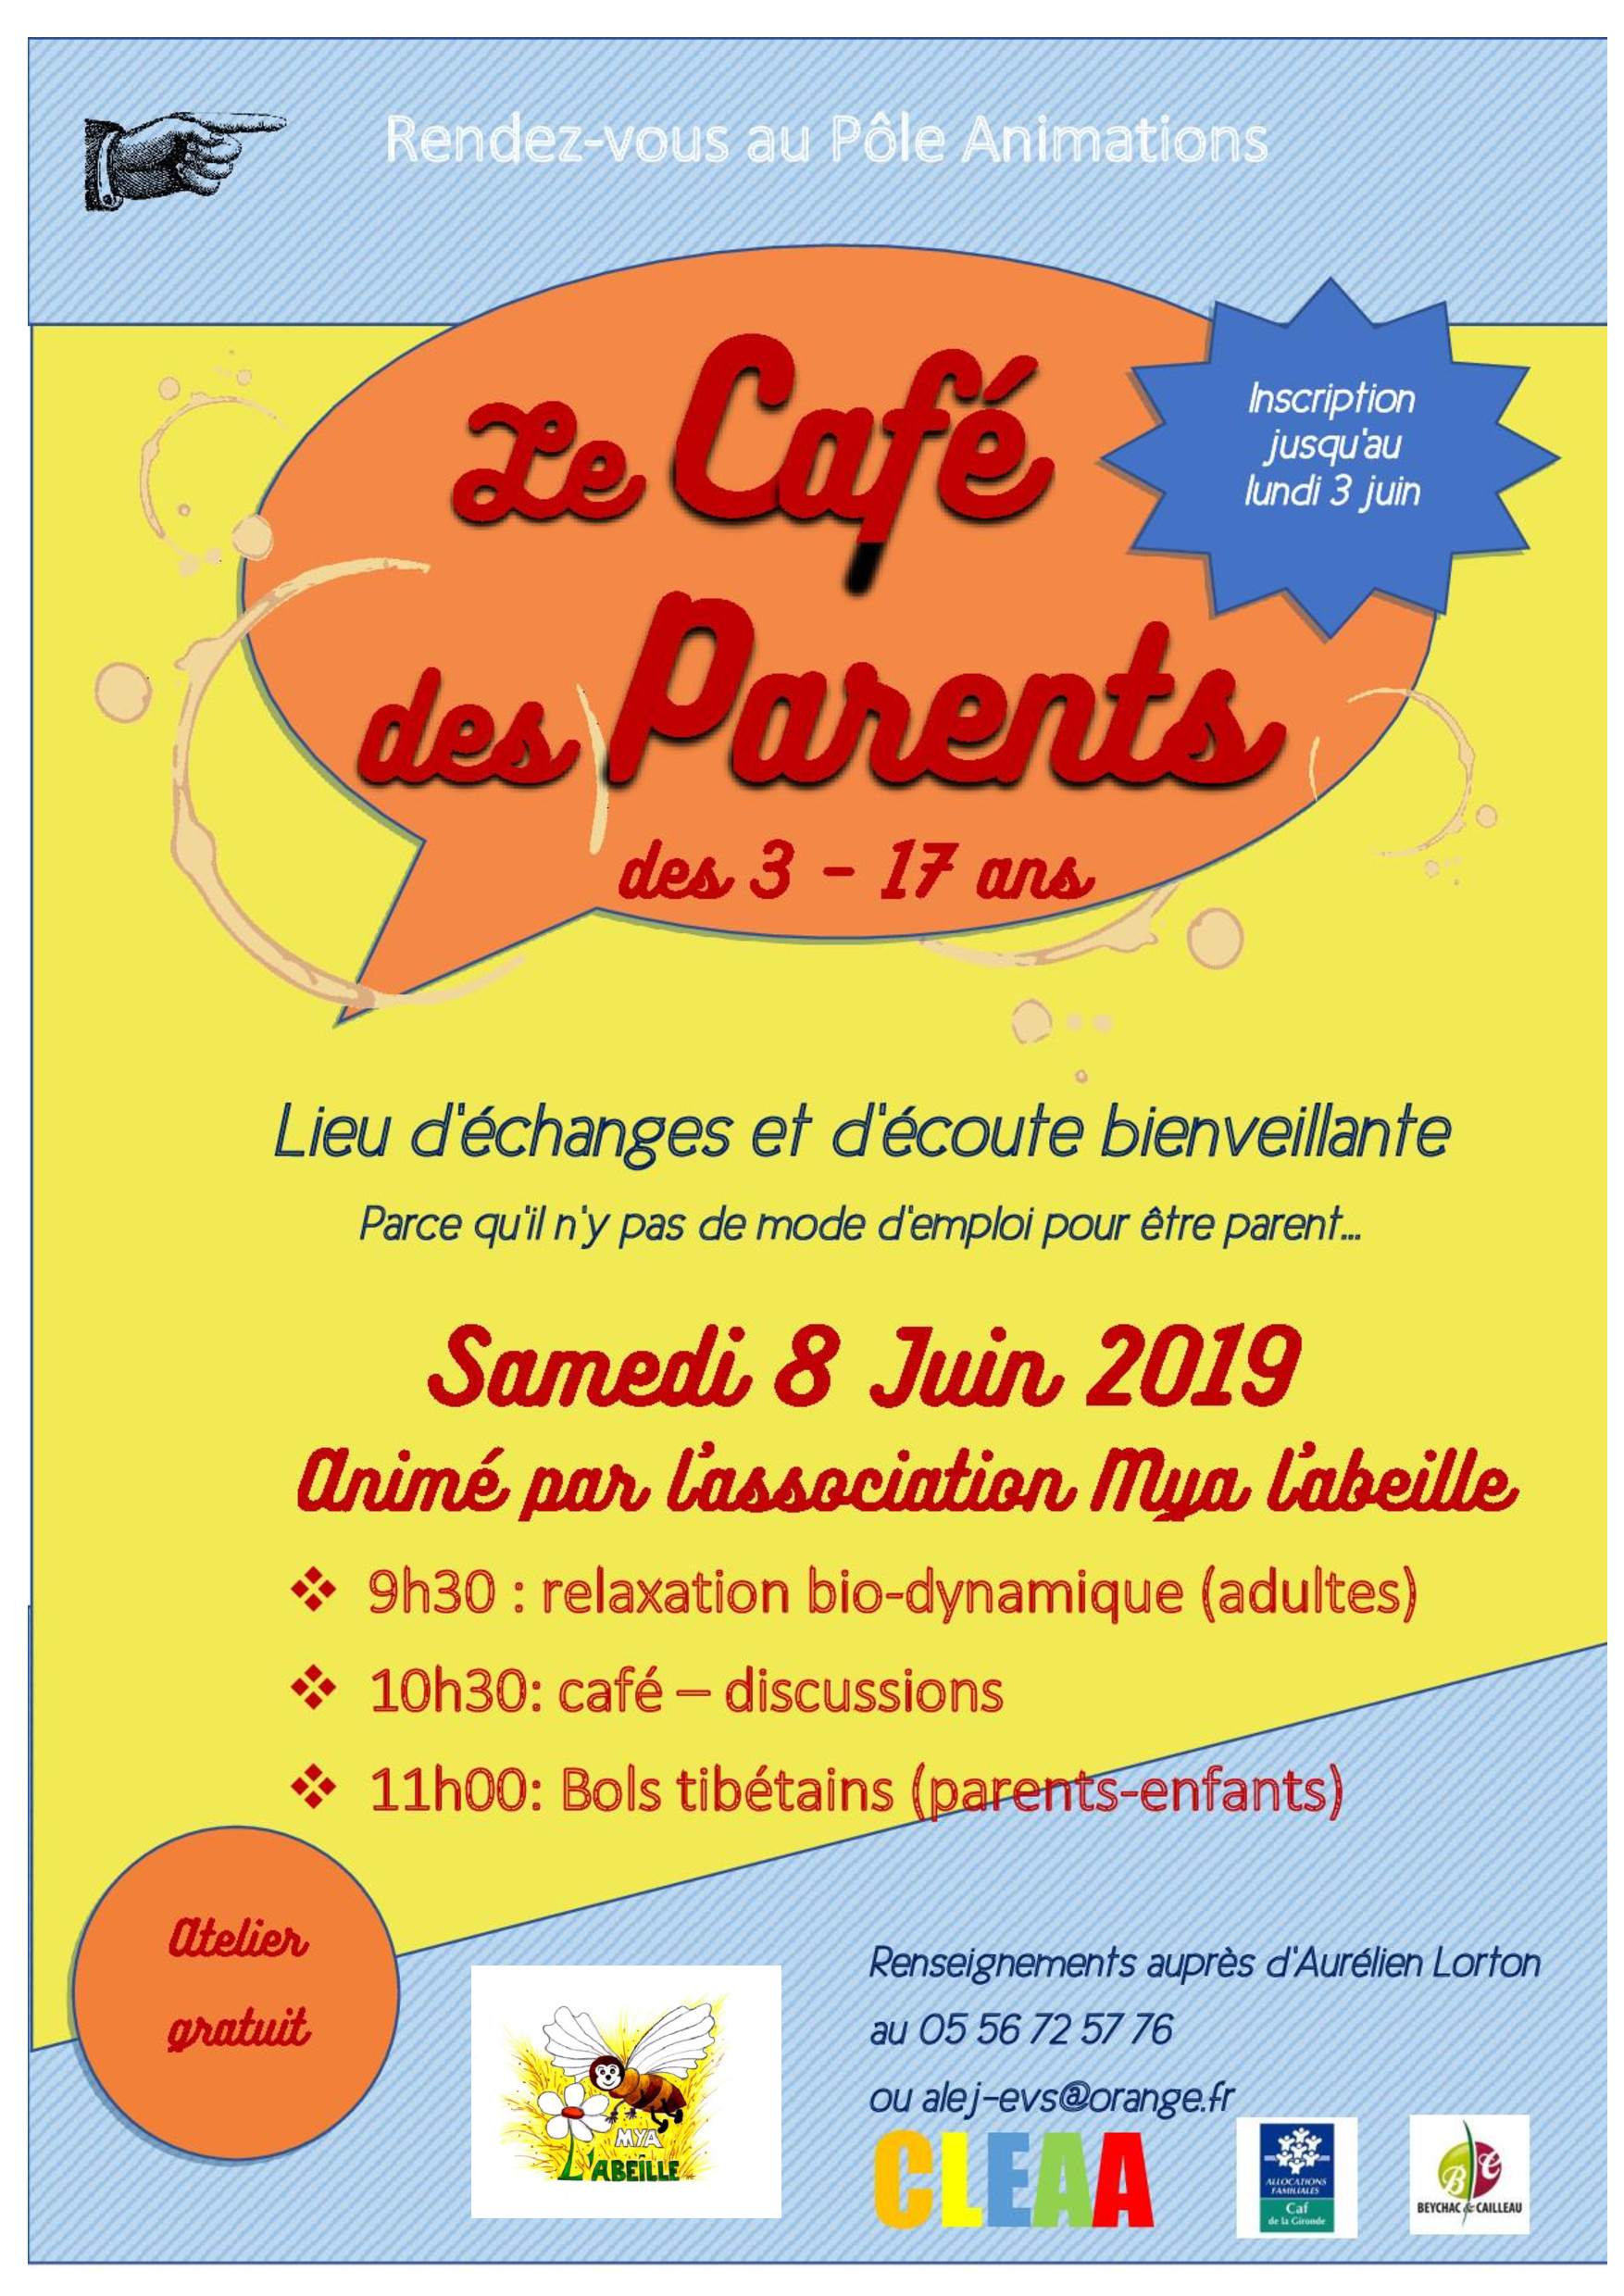 Le café des parents